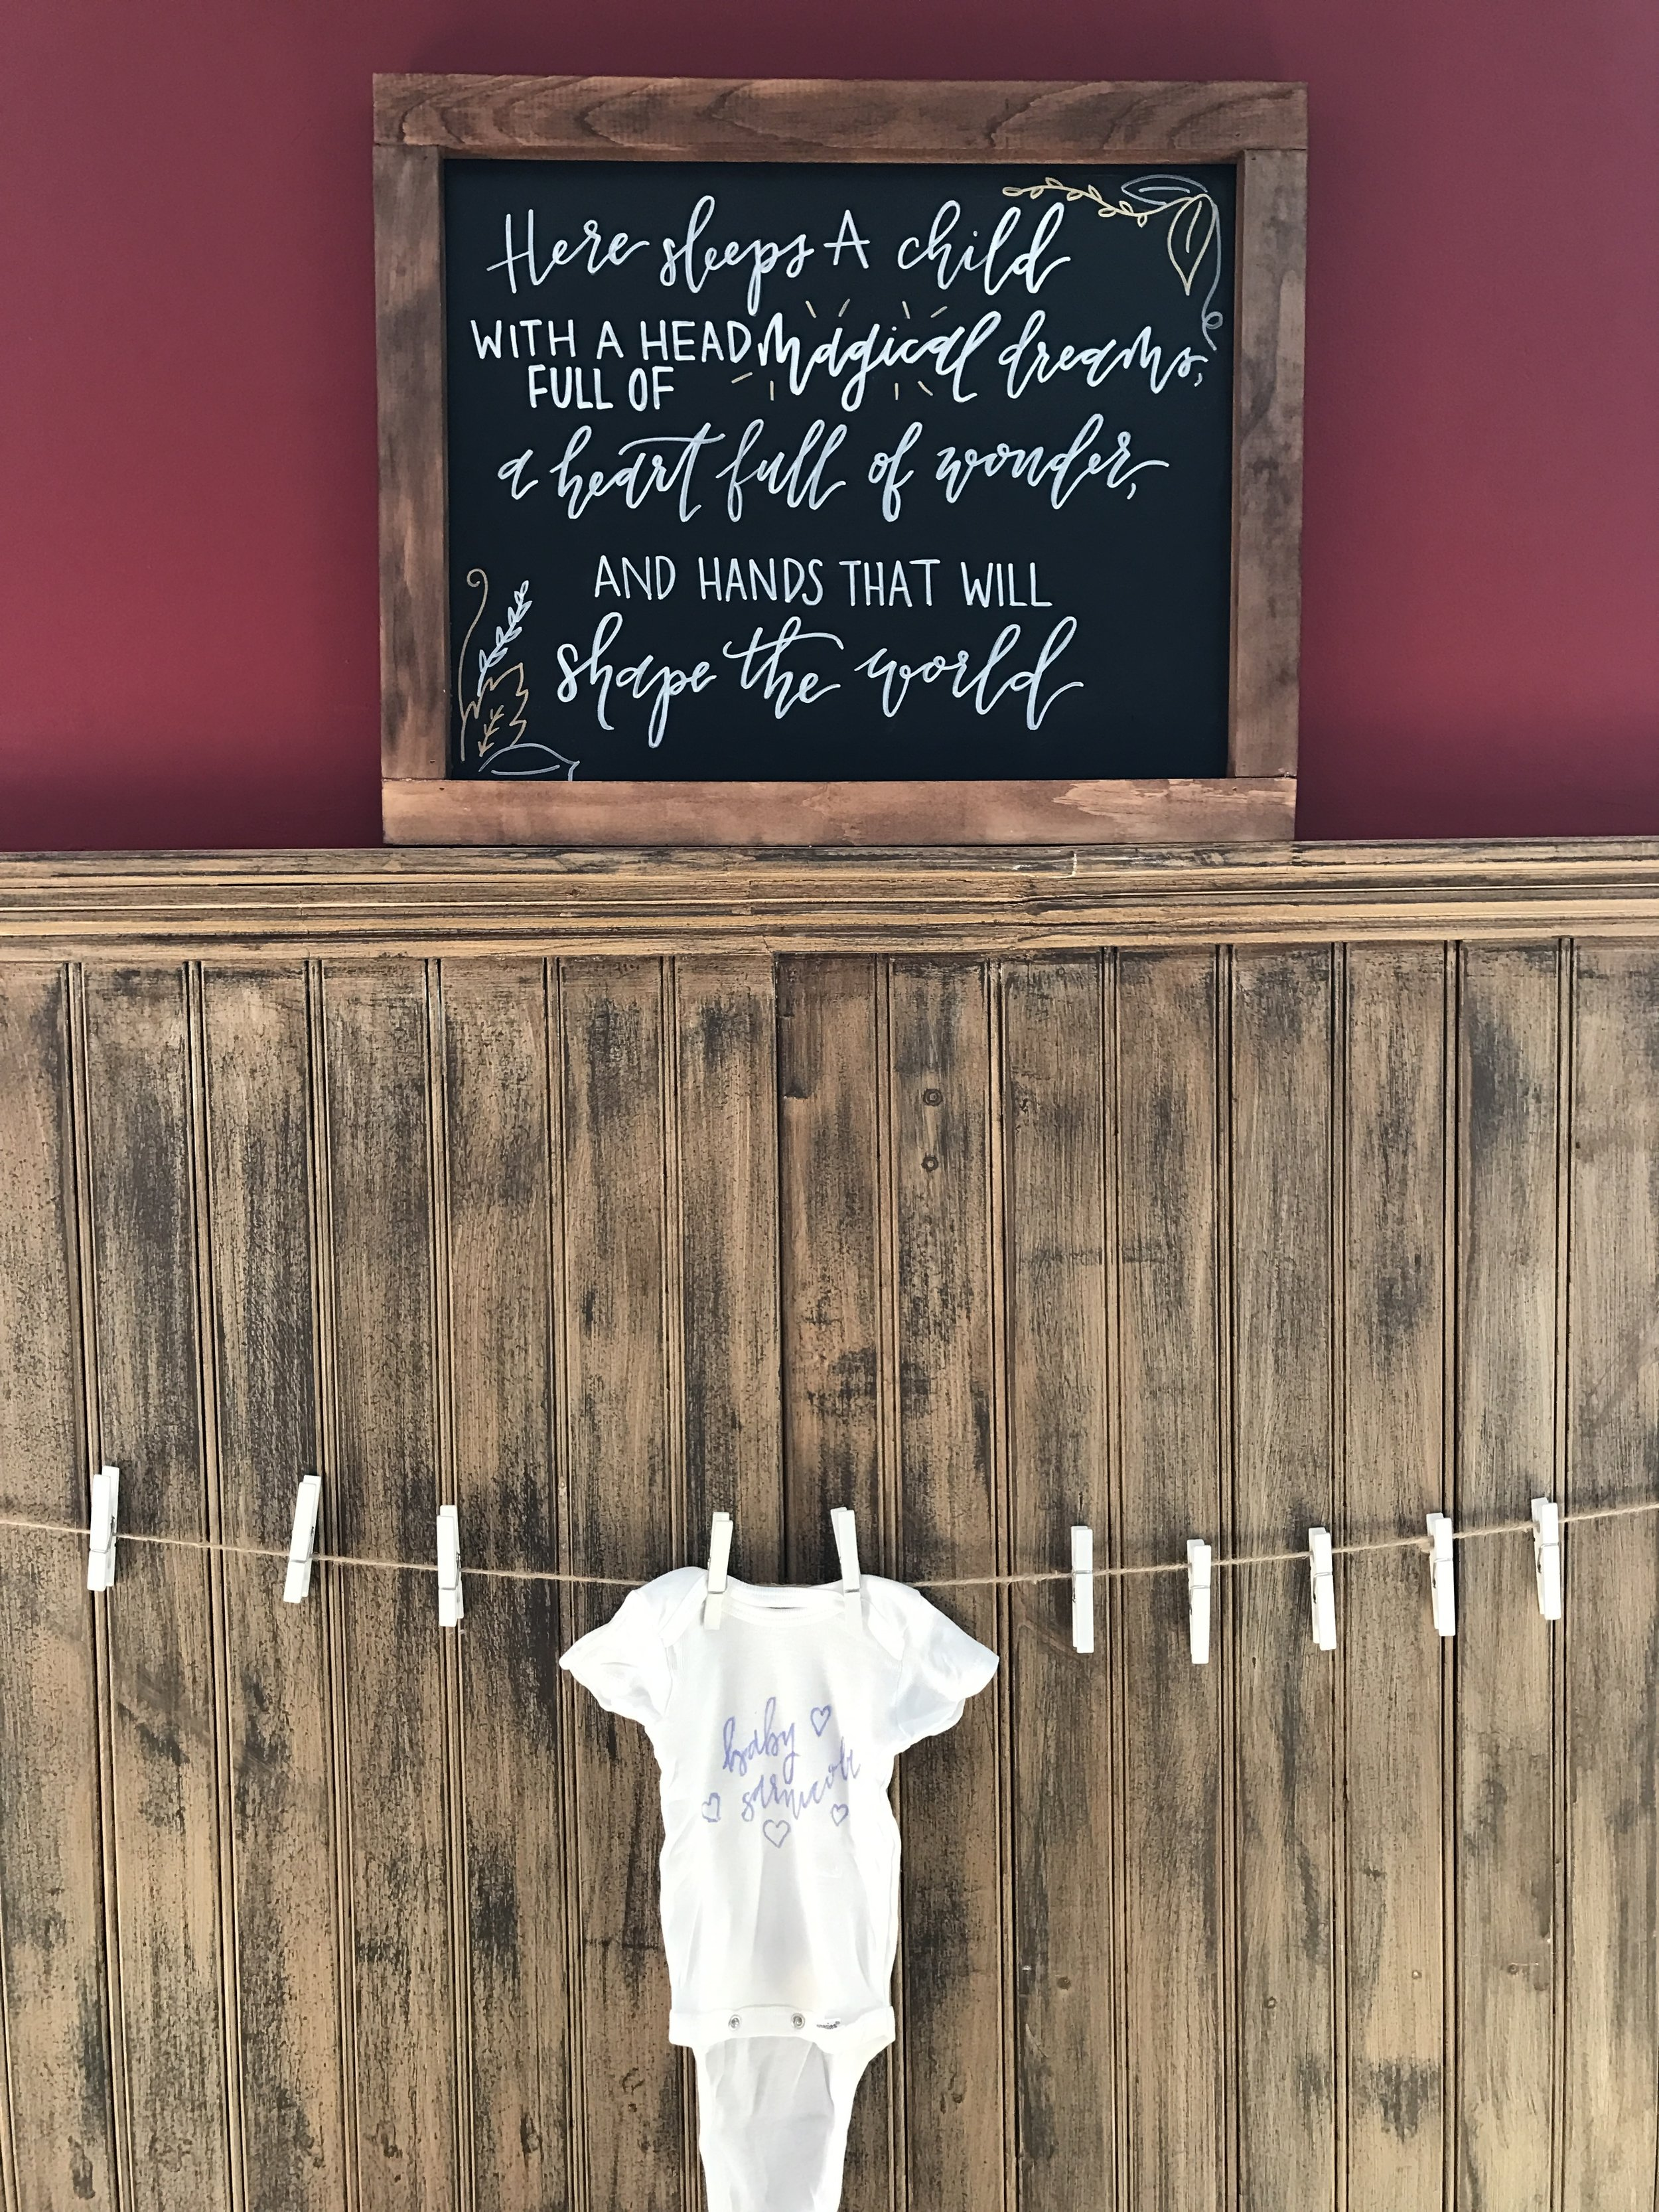 A clothesline lined the restaurant wall to later display all of the adorable onesies that guests created.